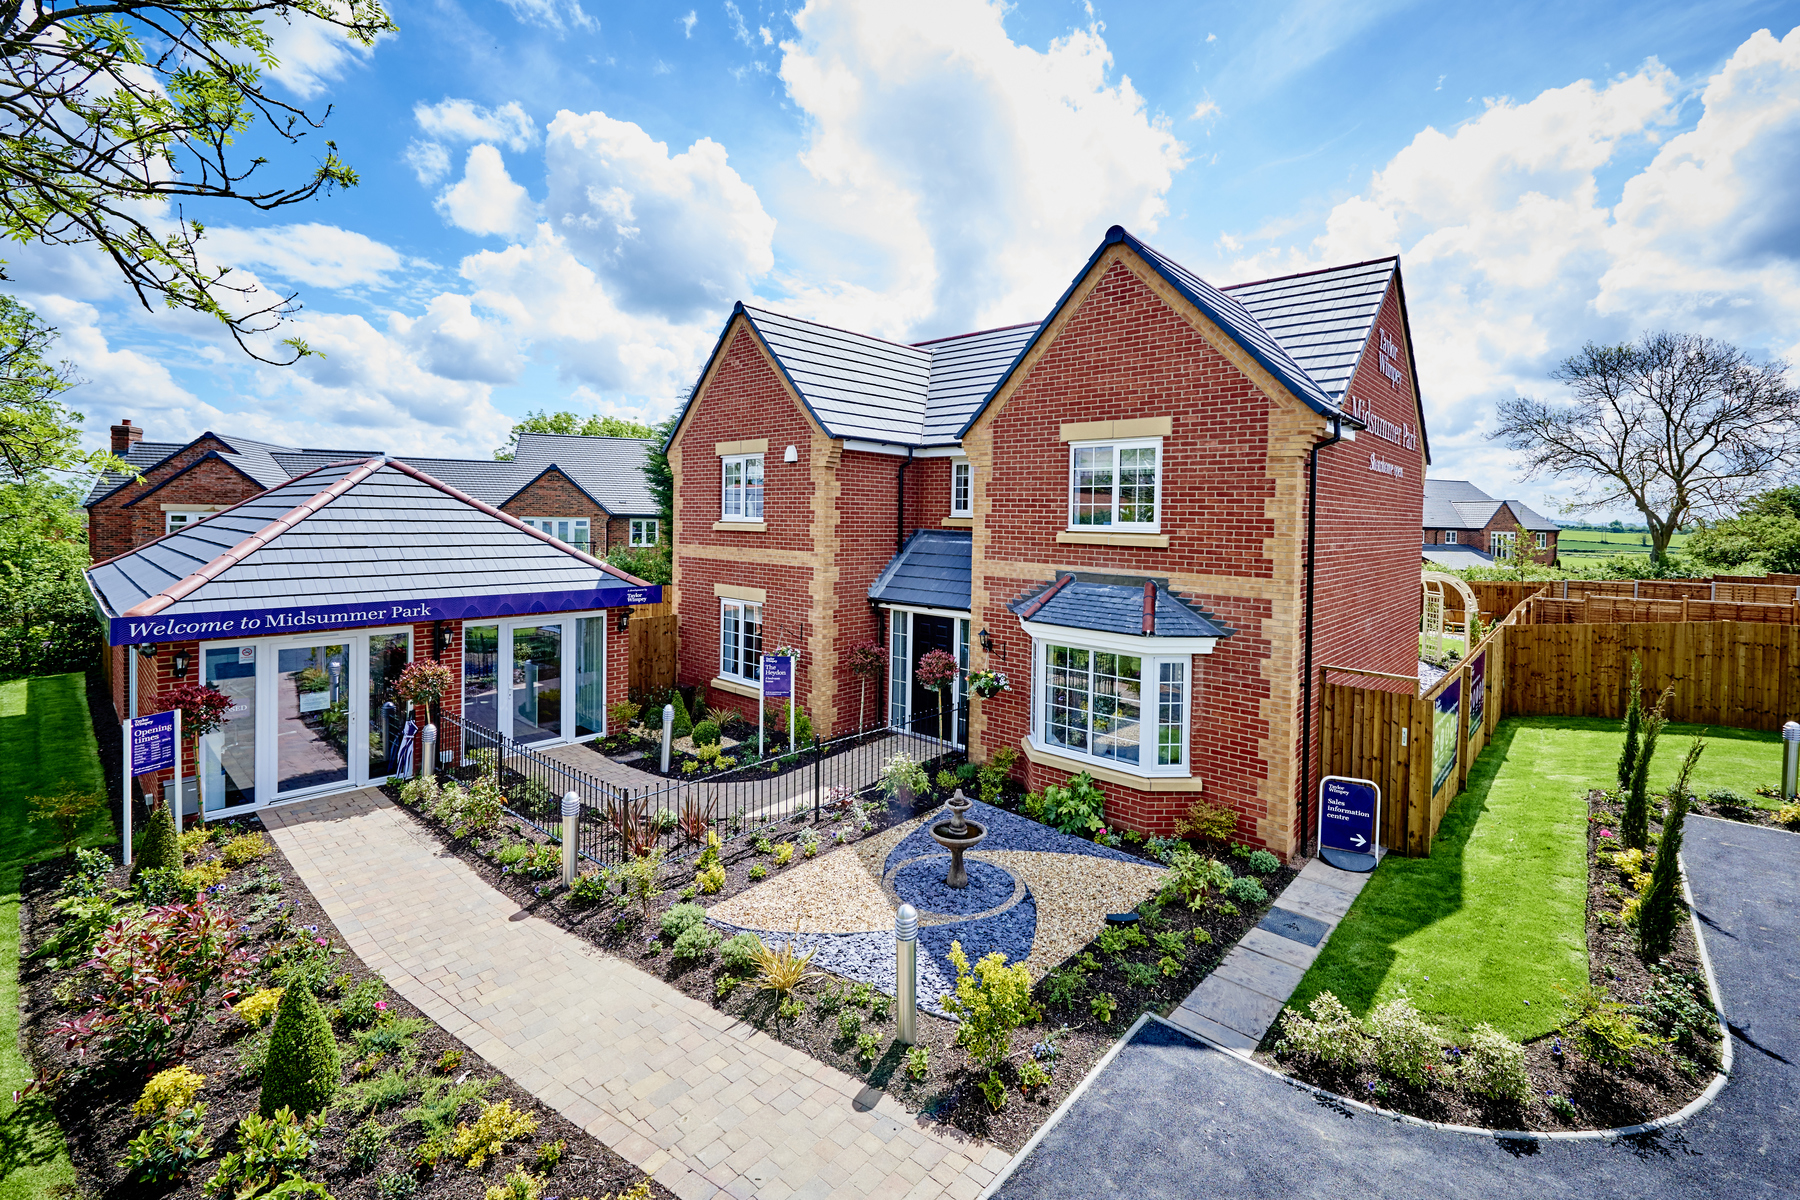 TWM_Heydon_Showhome_MidsummerPark_Stratford-upon-Avon_May2017_0009